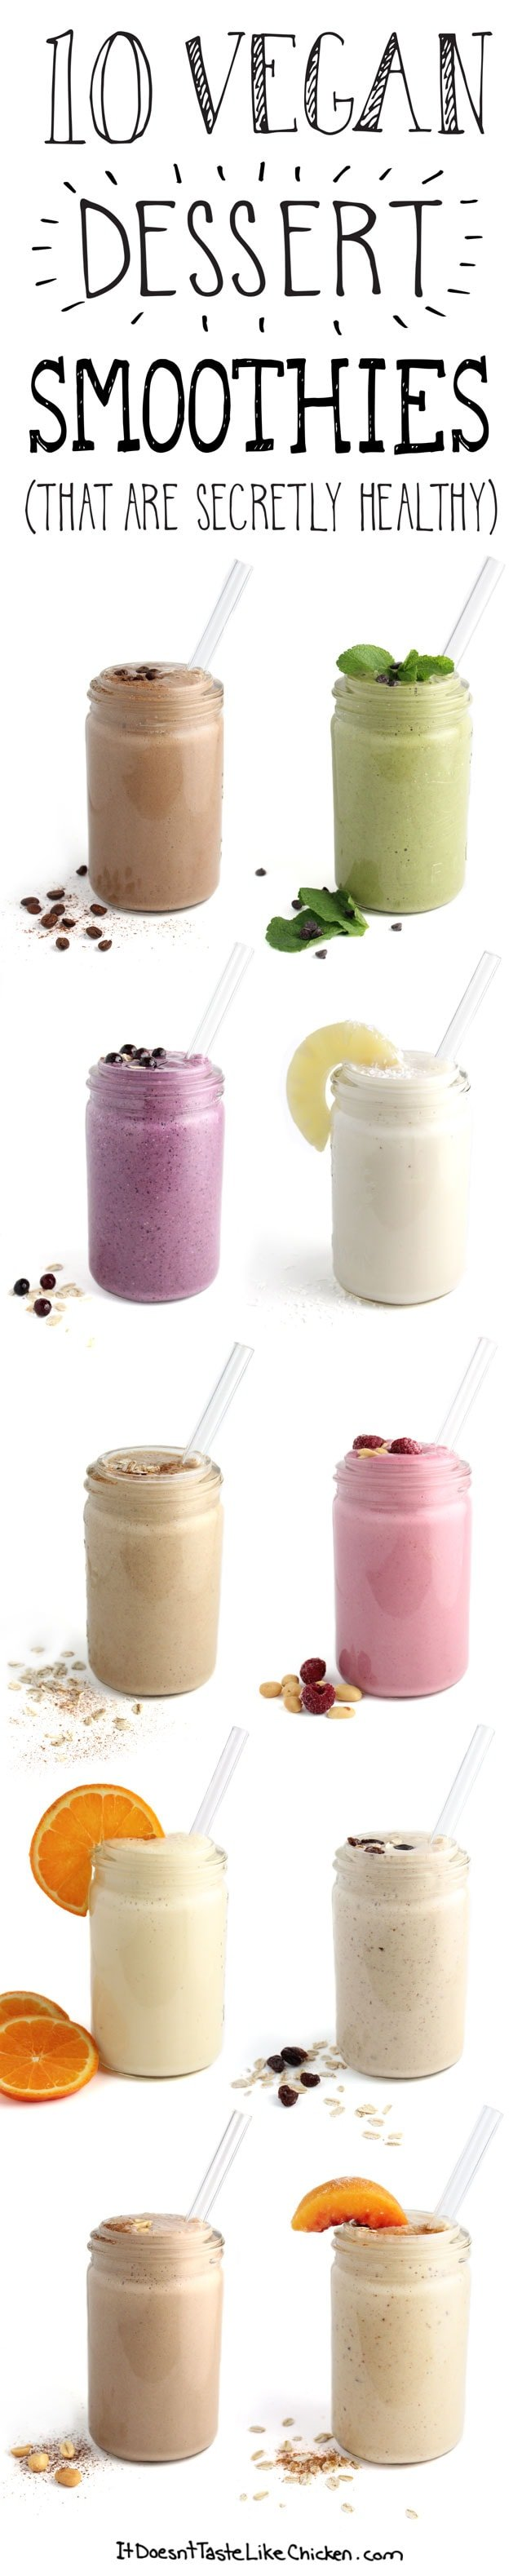 10-vegan-dessert-smoothies-(that-are-secretly-healthy)-large